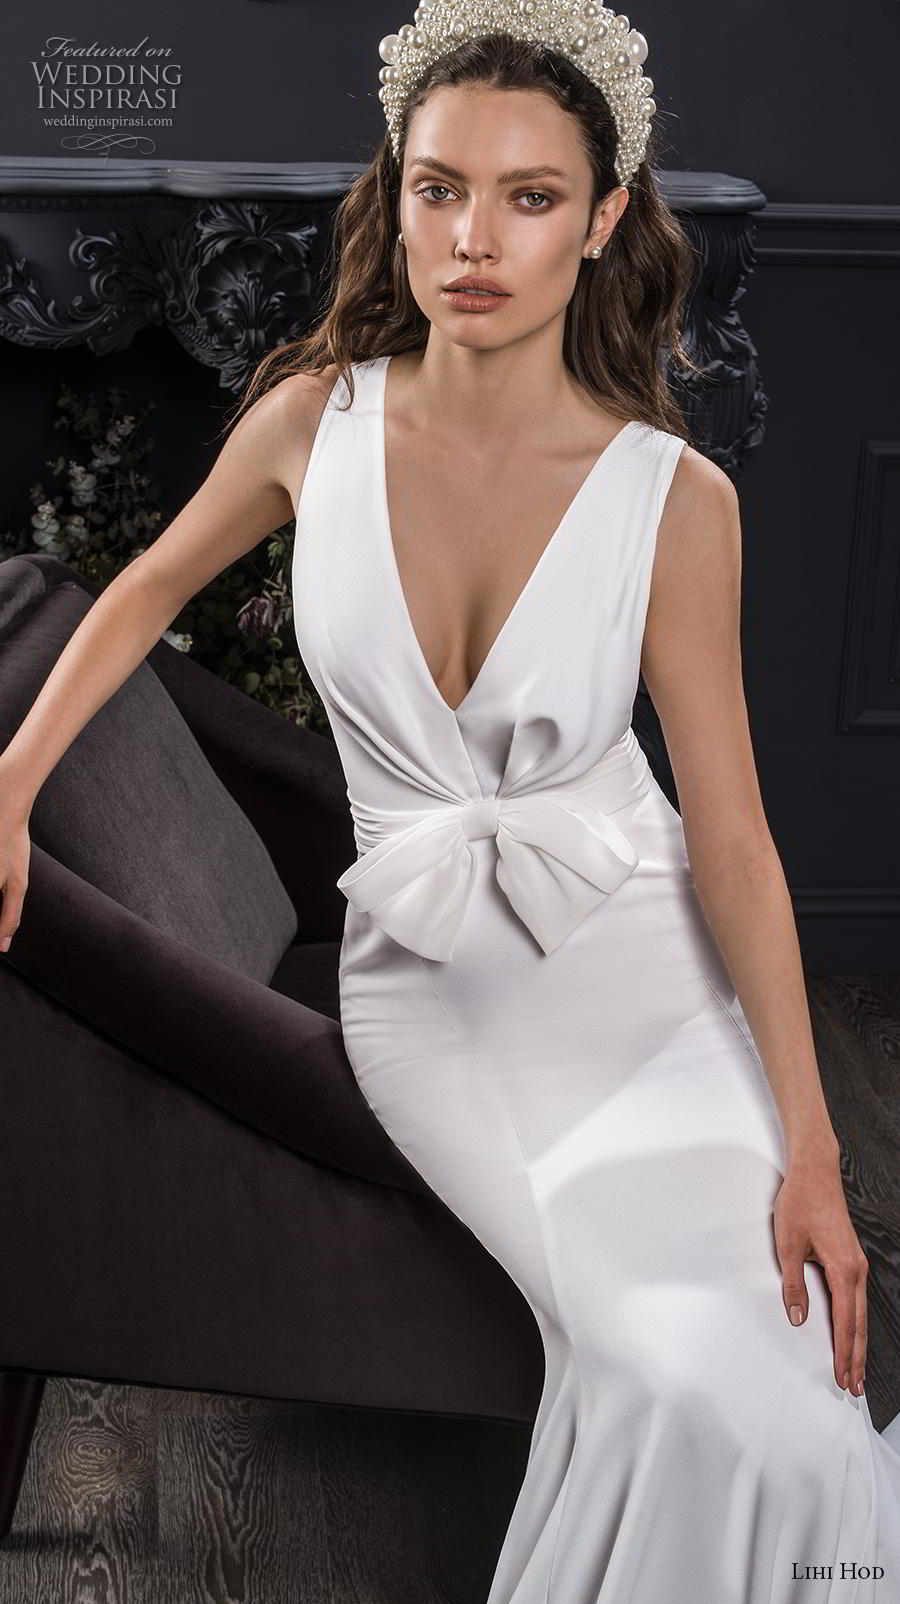 lihi hod spring 2020 bridal sleeveless deep v neck simple minimalist elegant fit and flare wedding dress chapel train (7) zv